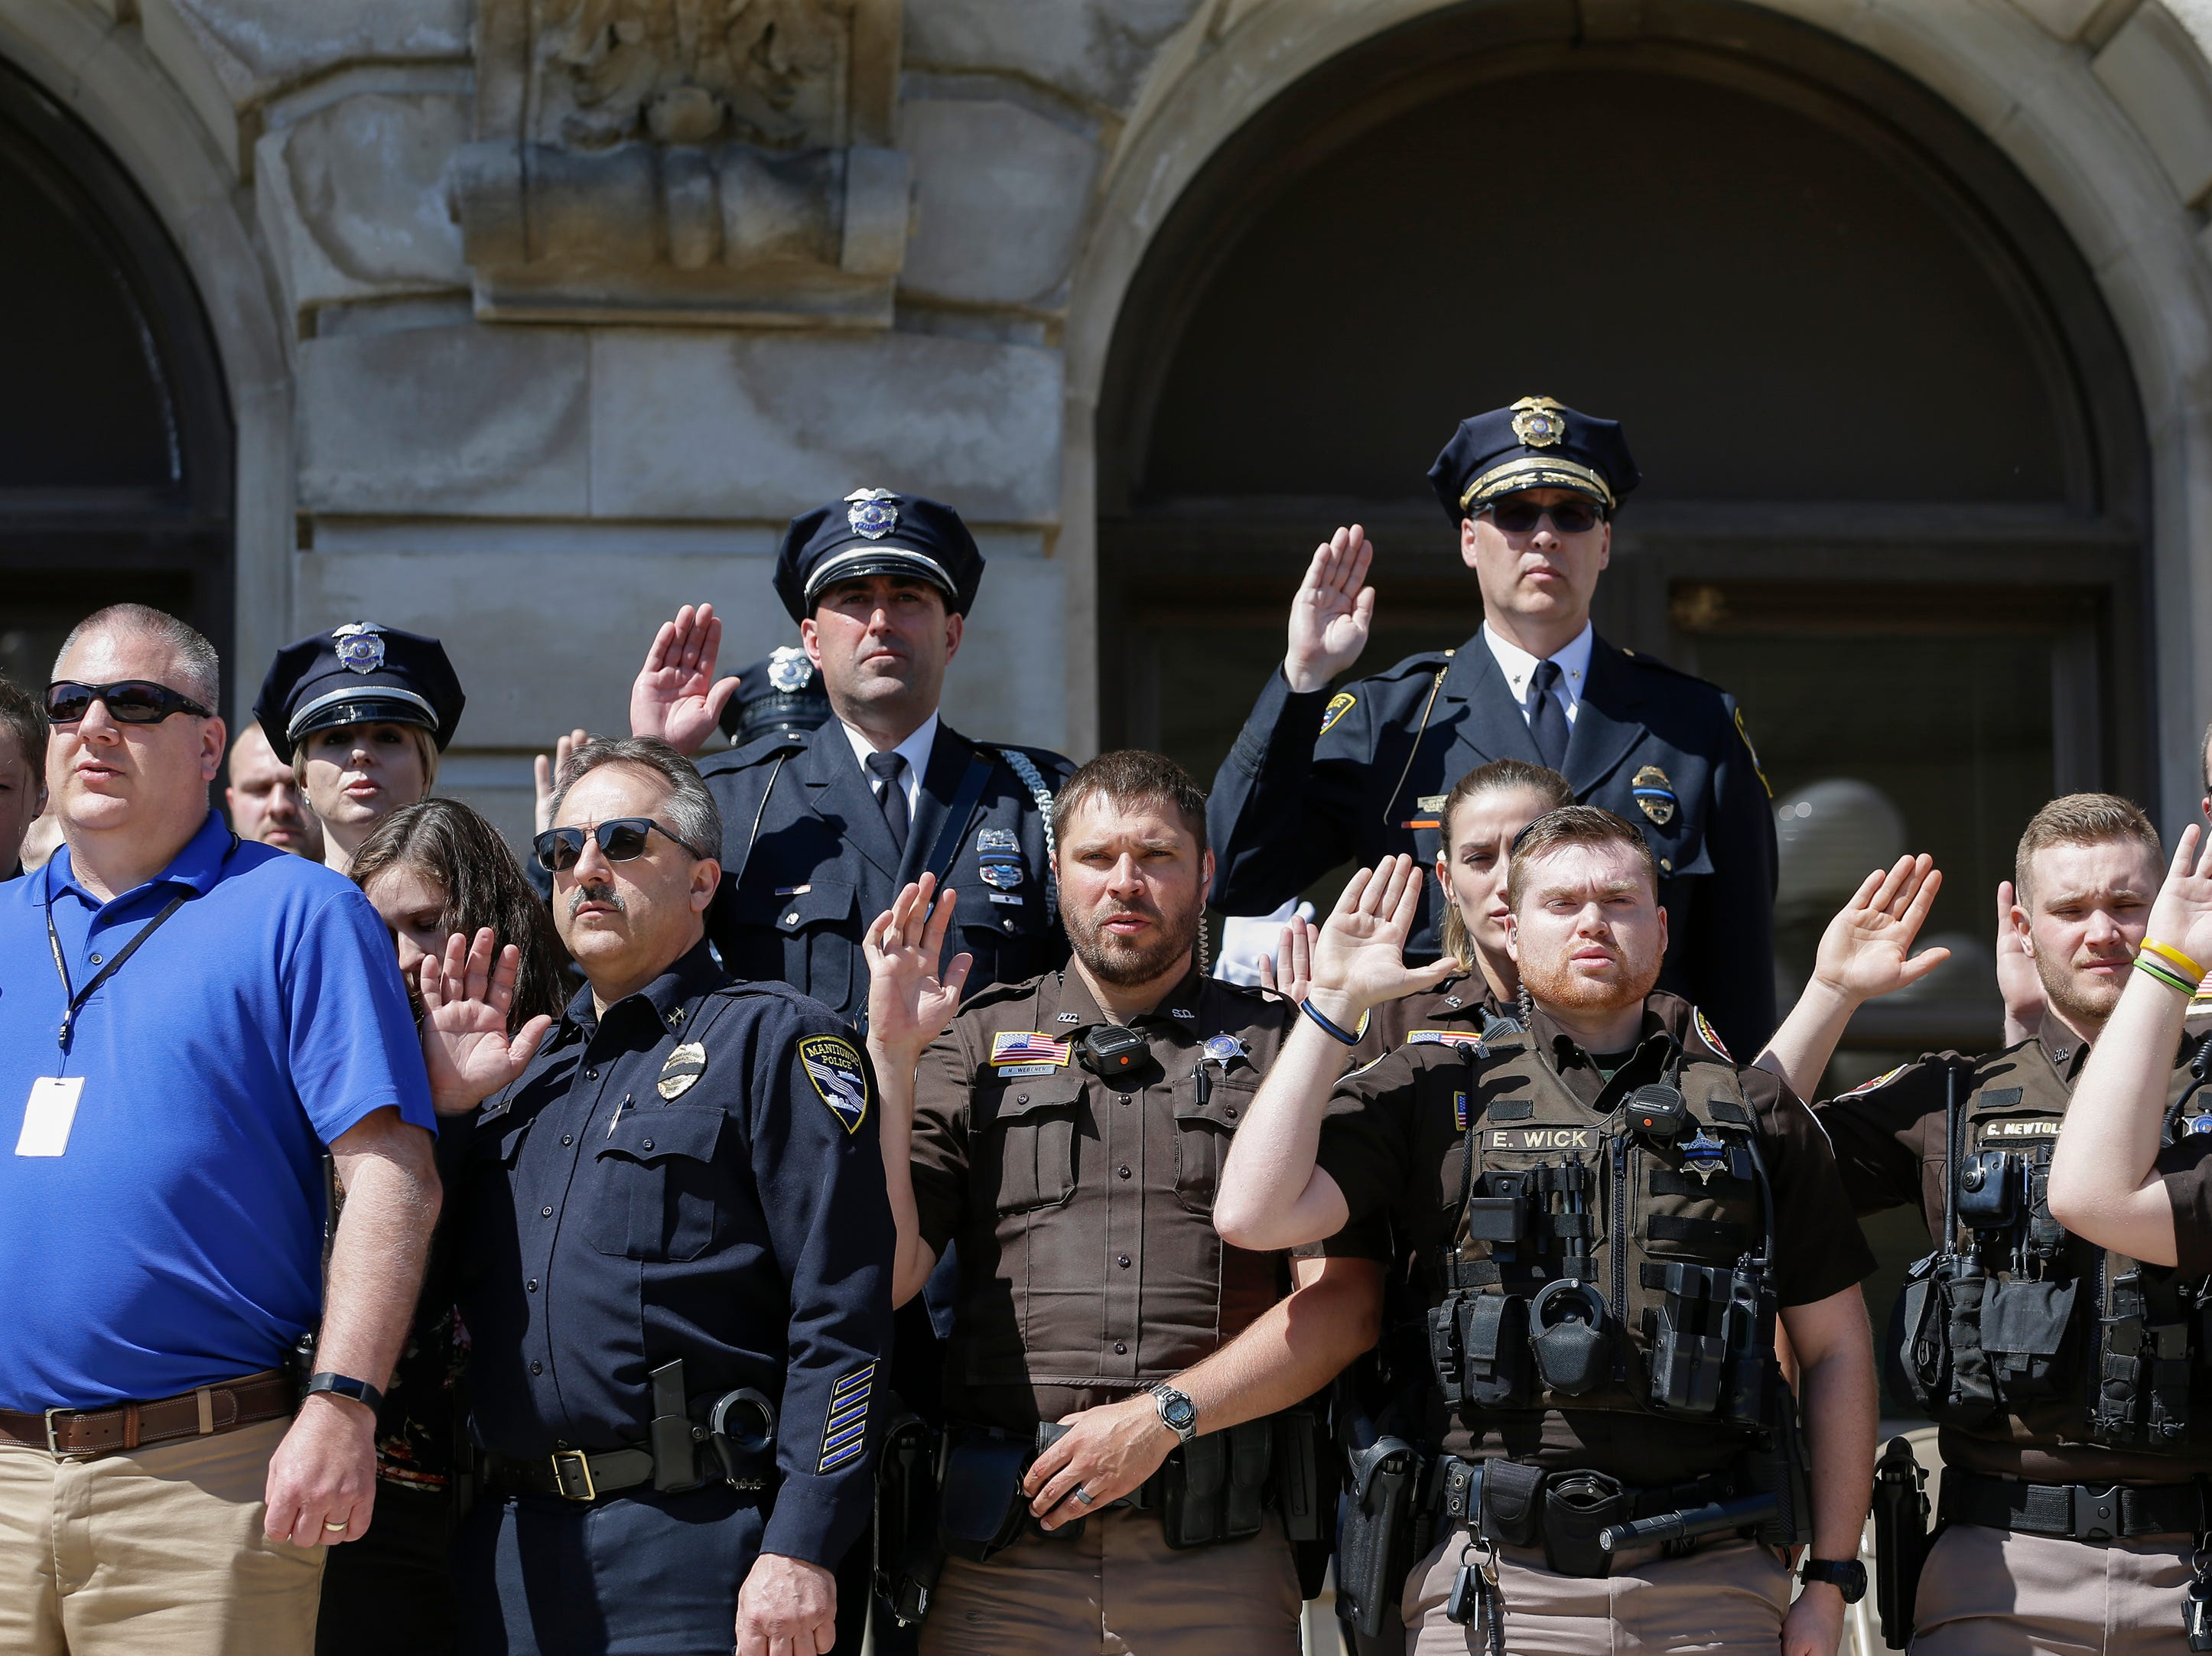 Law enforcement recites the oath of honor during the Manitowoc County Peace Officer Memorial Service Wednesday, May 15, 2019, in Manitowoc, Wis. Joshua Clark/USA TODAY NETWORK-Wisconsin